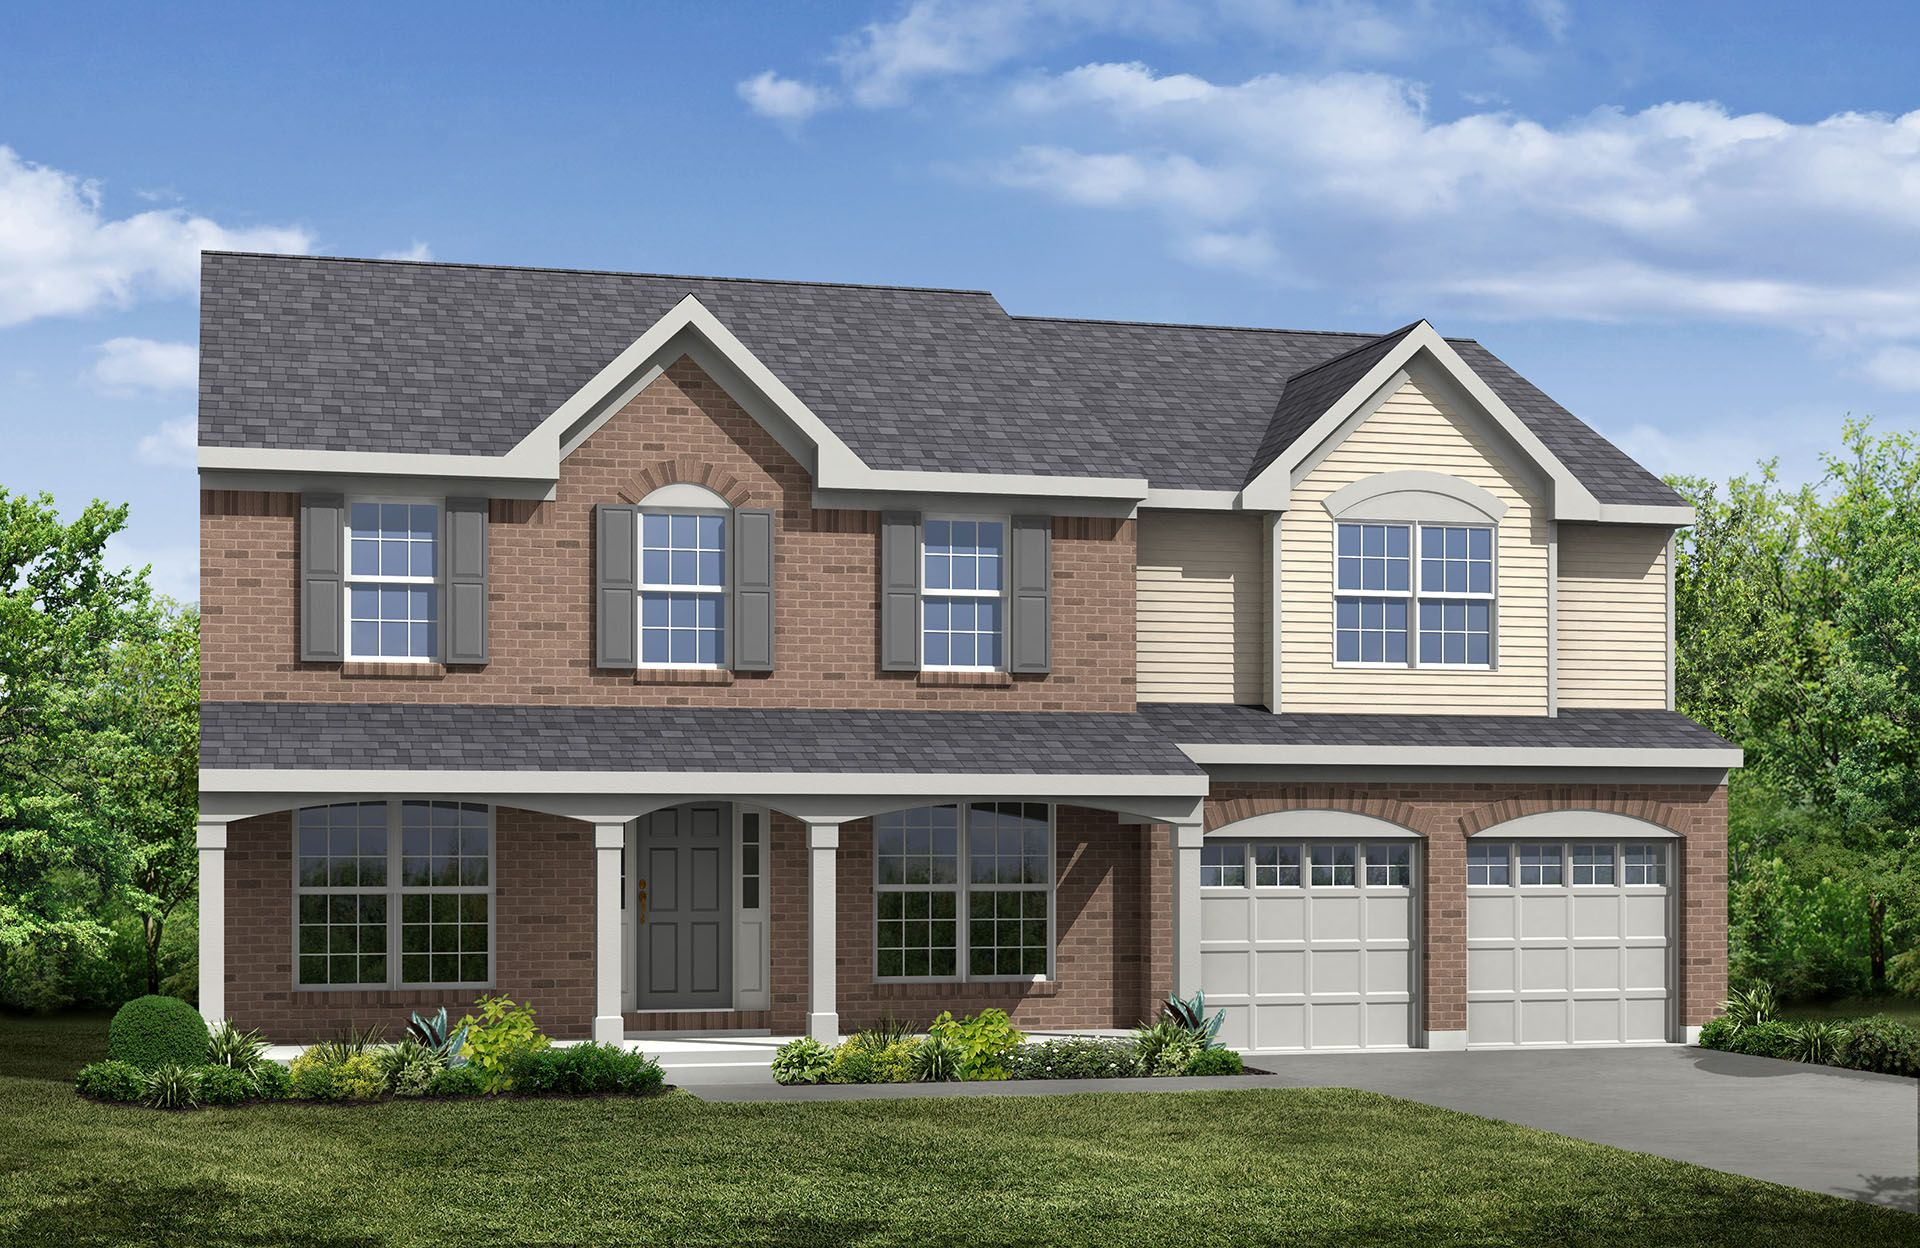 Gardens at Highland by Drees Homes